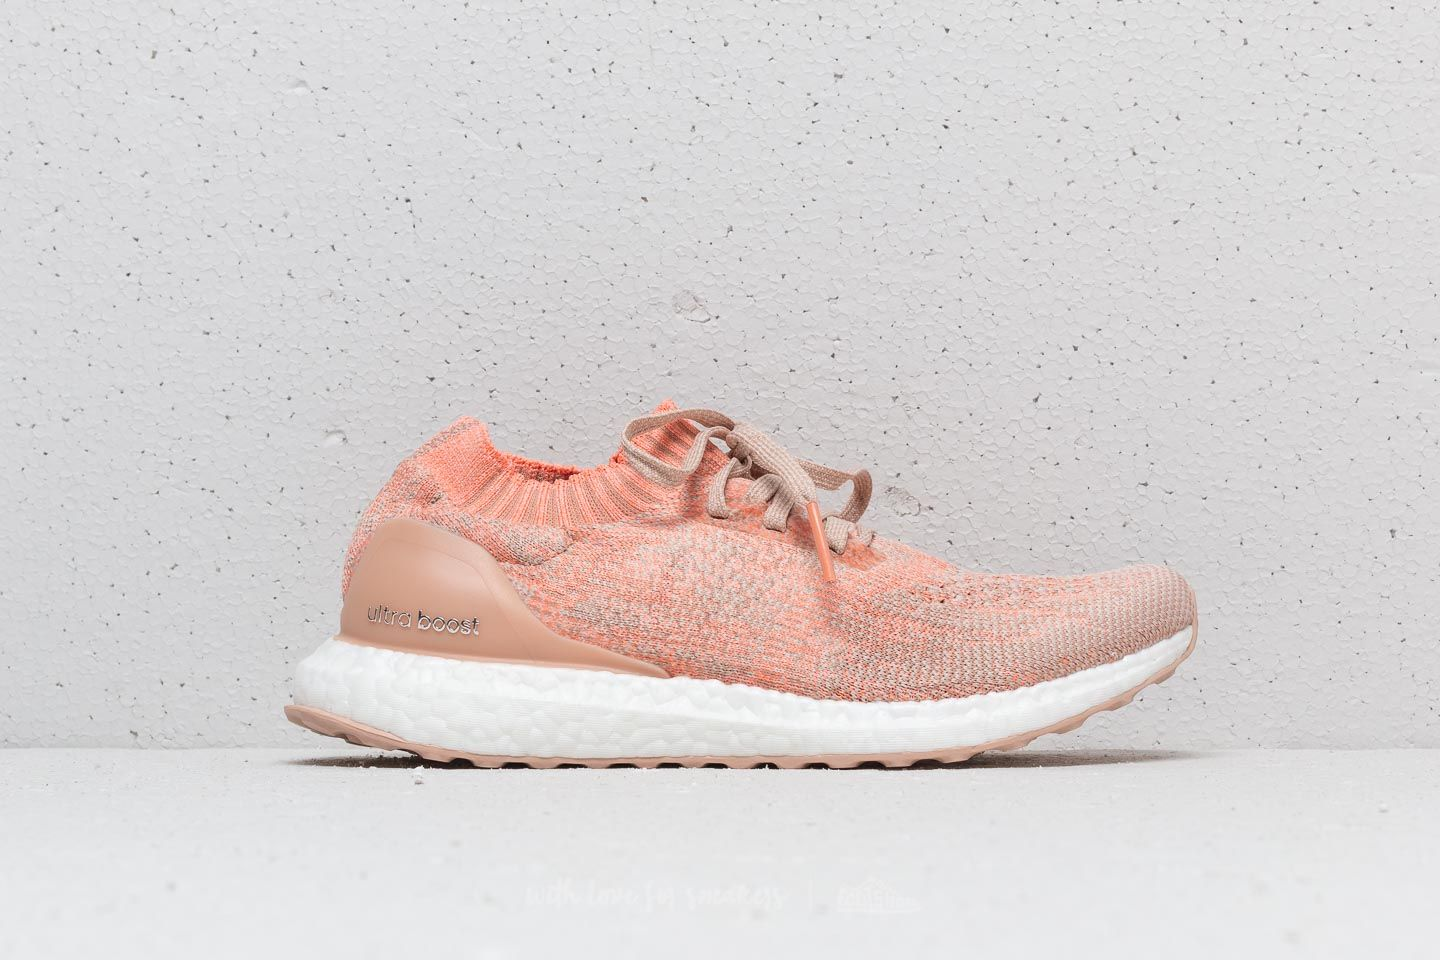 1544e2b71 ... wholesale adidas ultraboost uncaged w ash pearl chalk coral clear  orange at a great price a2589